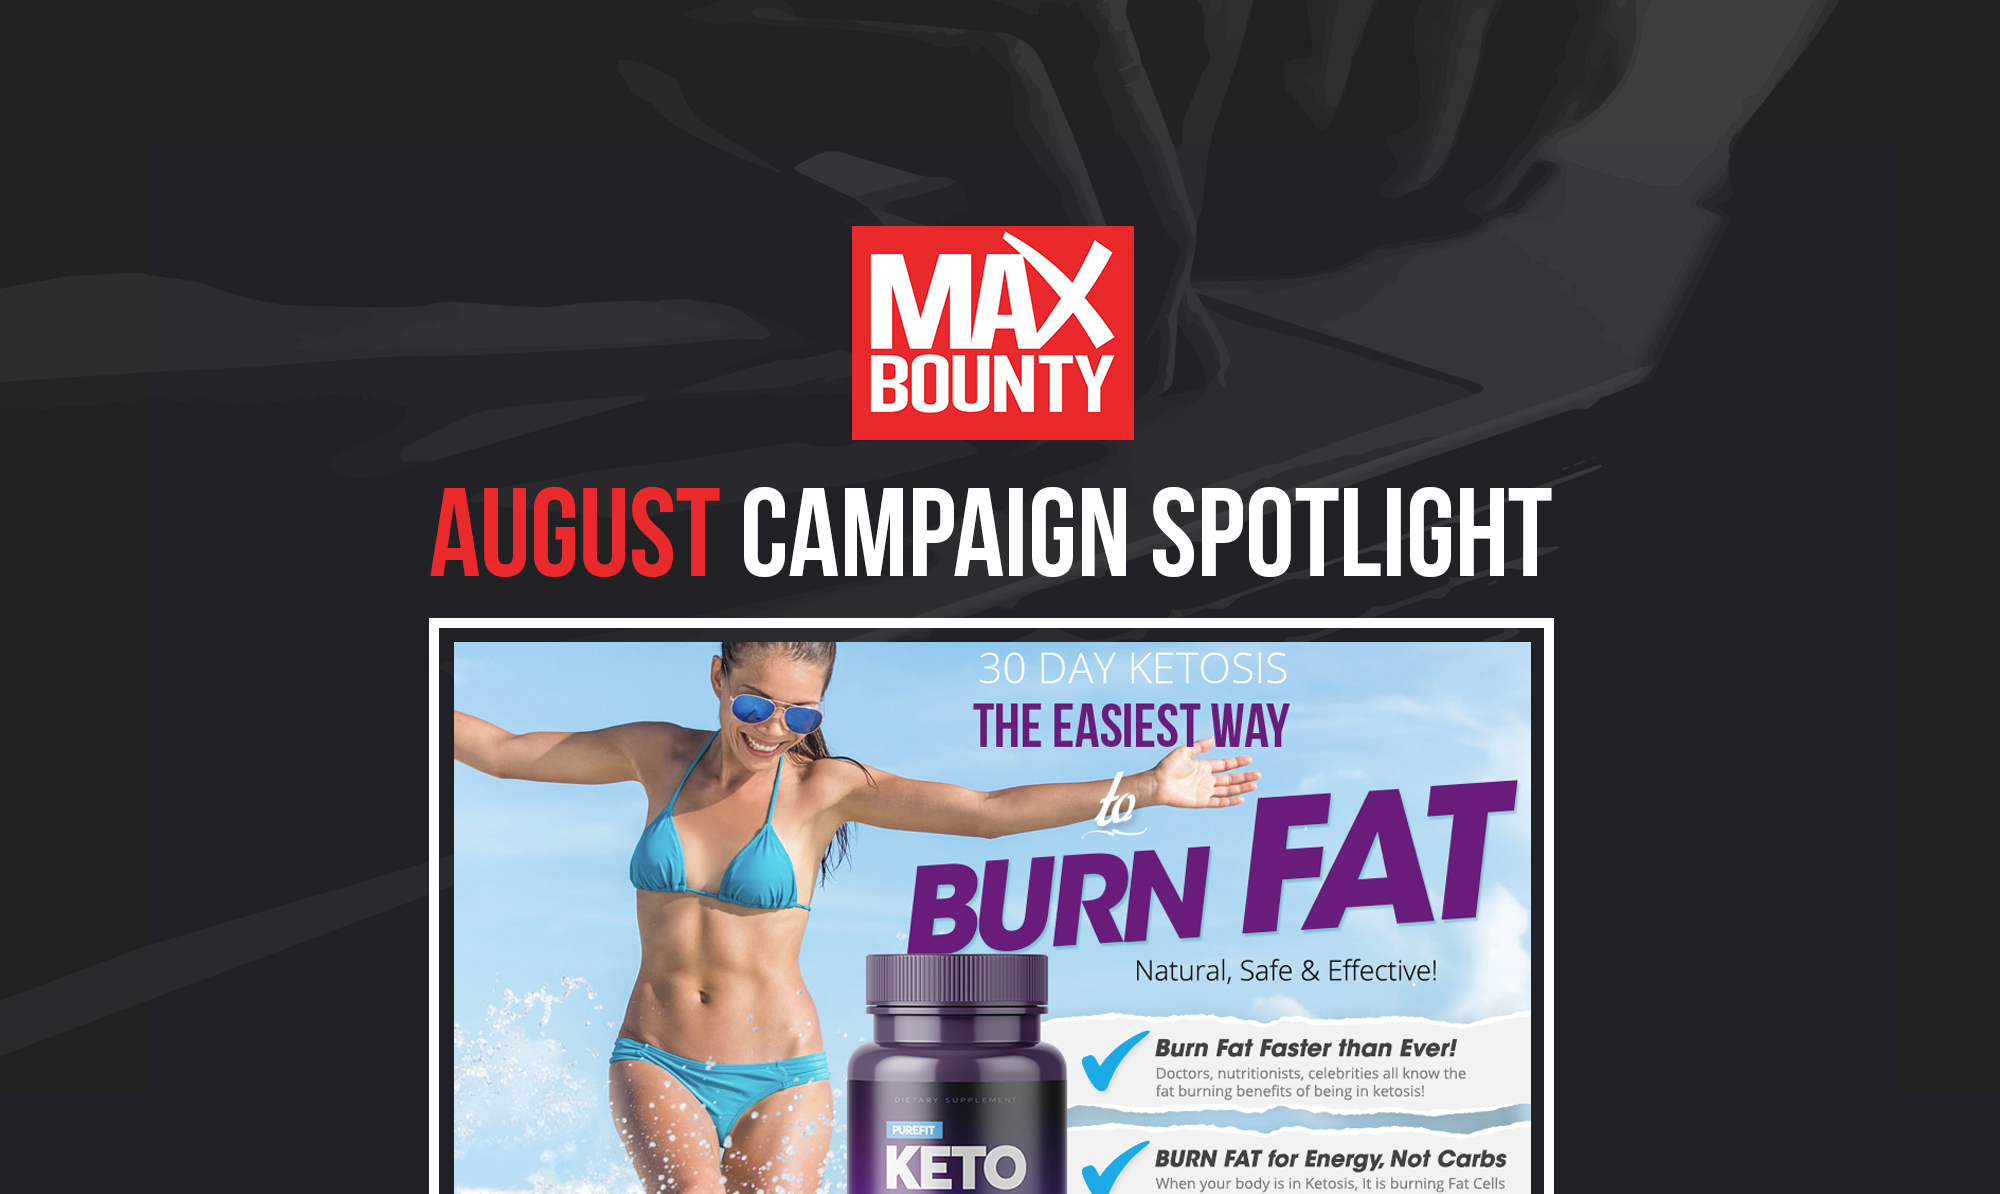 August Campaign Spotlight: KETO Weight Loss